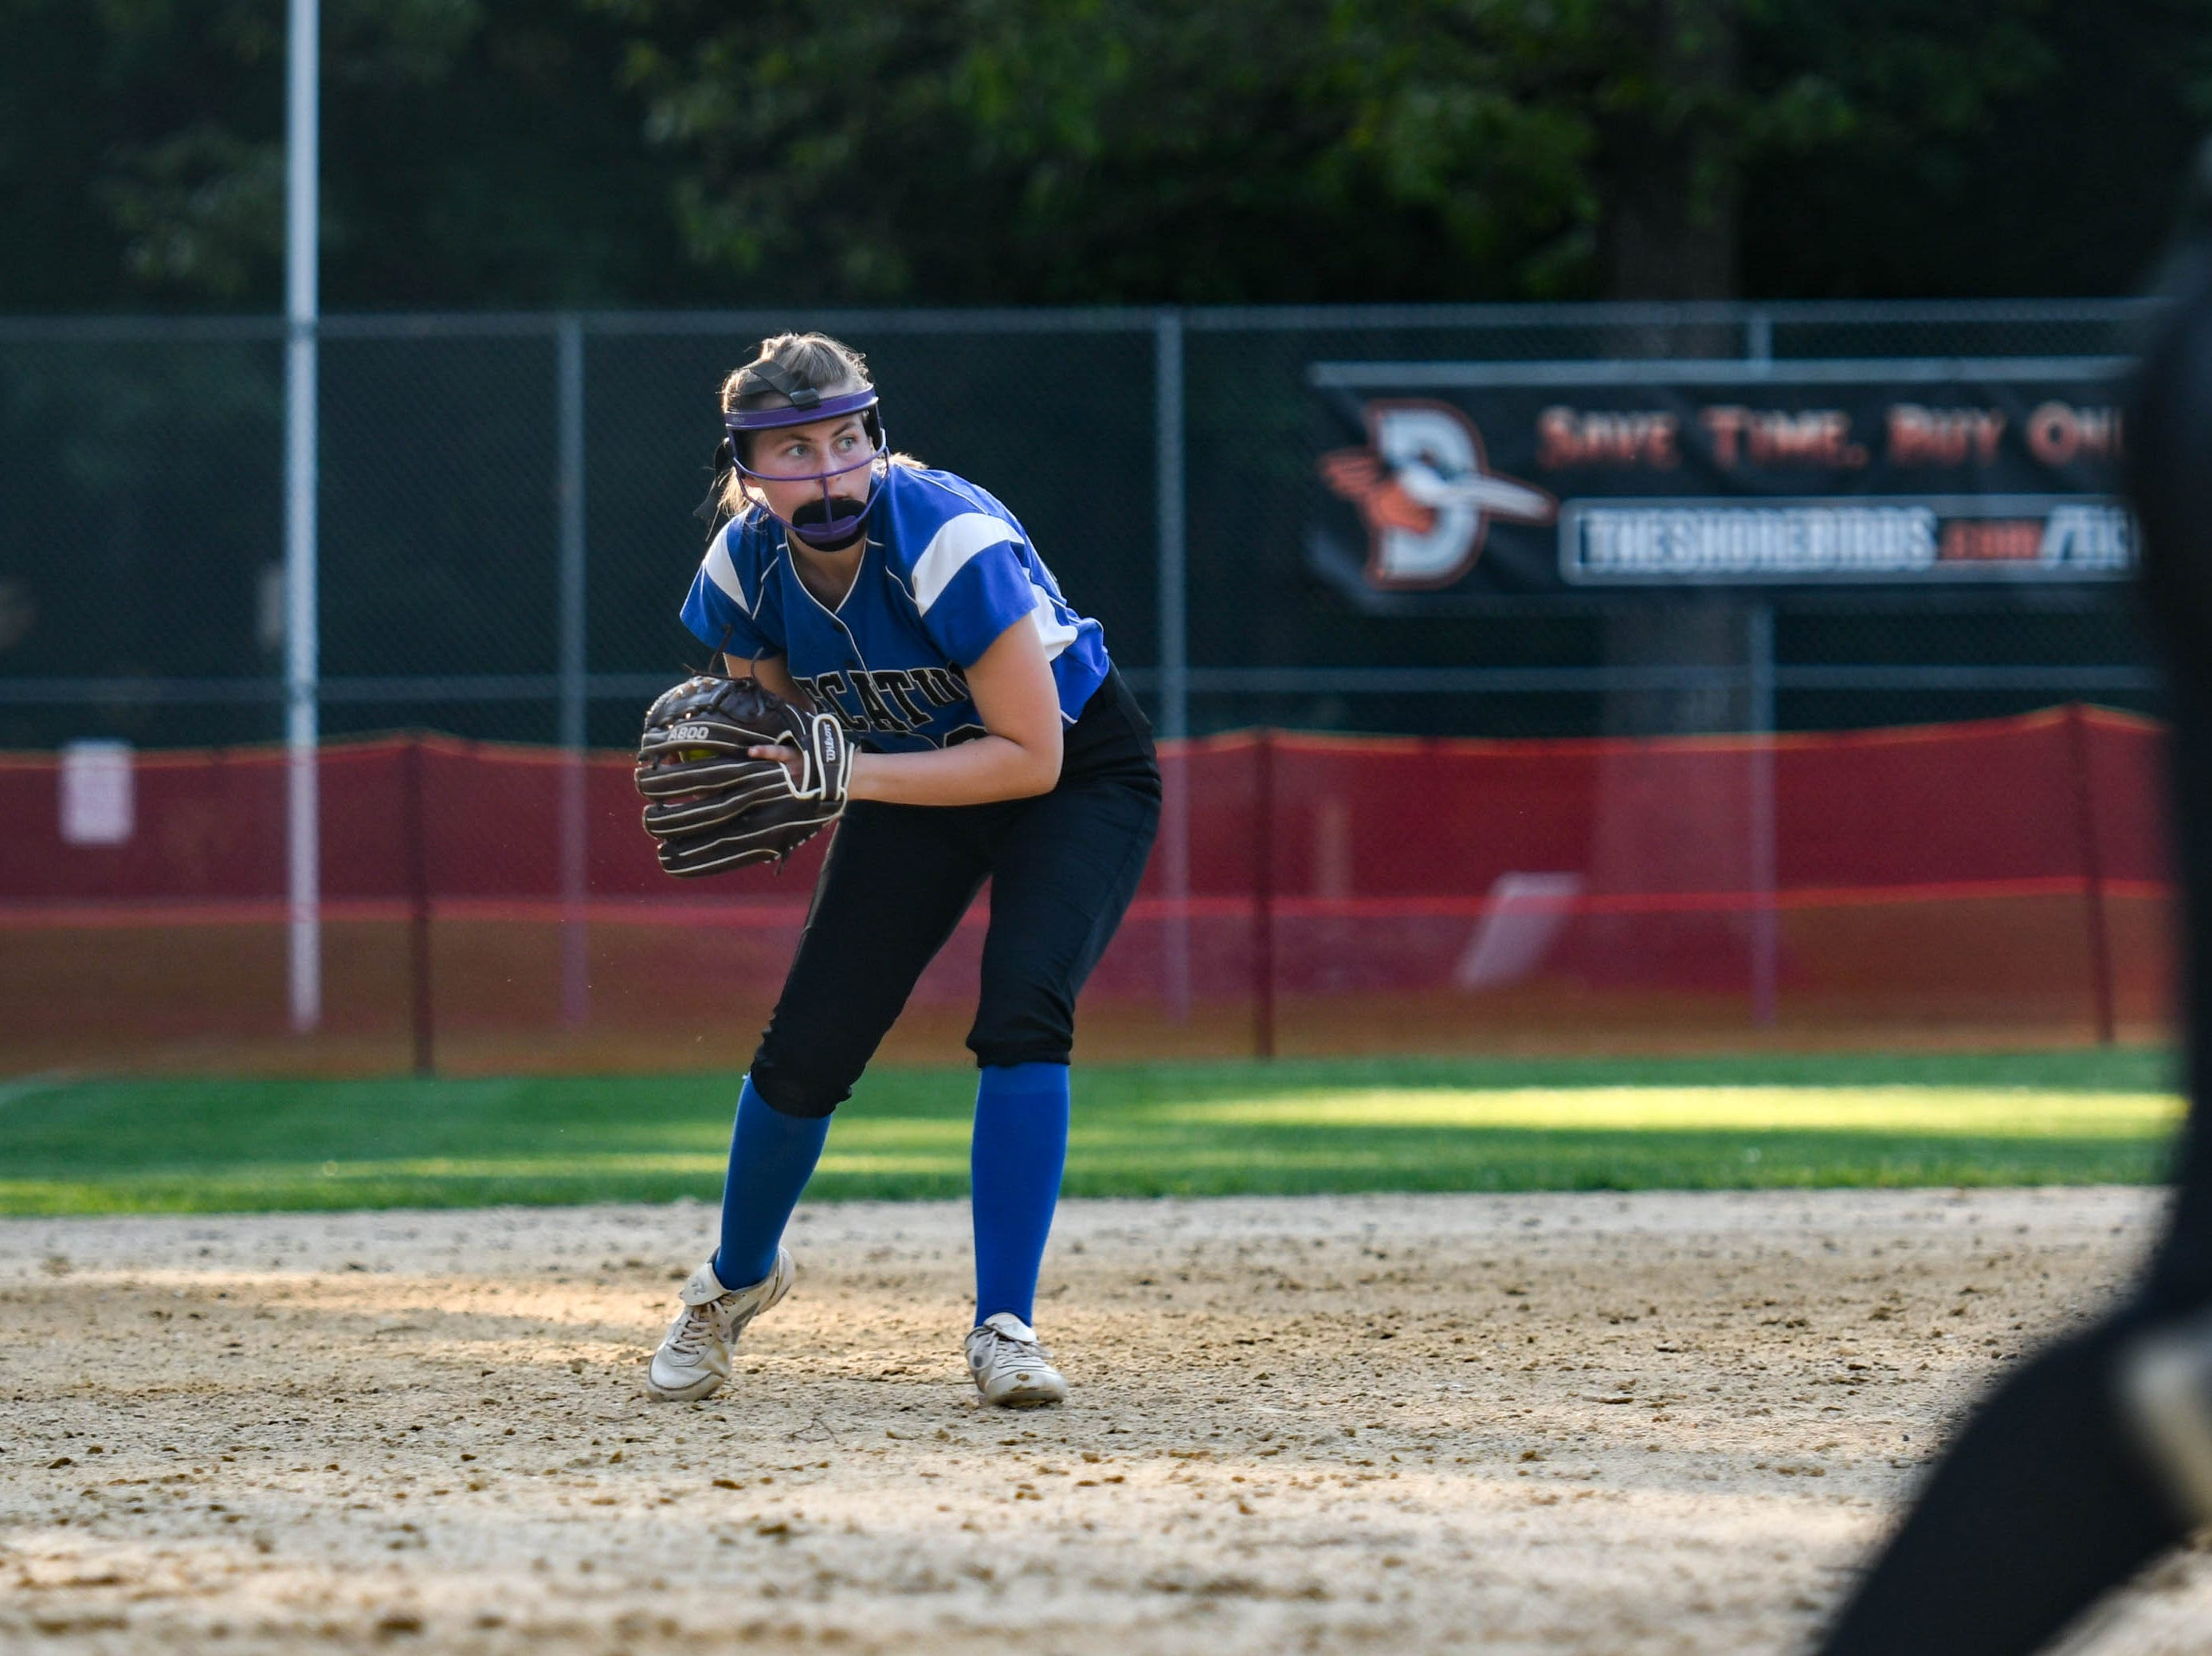 Decatur's Zoe Rayne (20) fields a ball against Colonel Richardson in the Bayside Softball Championship game on Wednesday, May 8, 2019. Decatur prevailed with a score of 4 to 1.